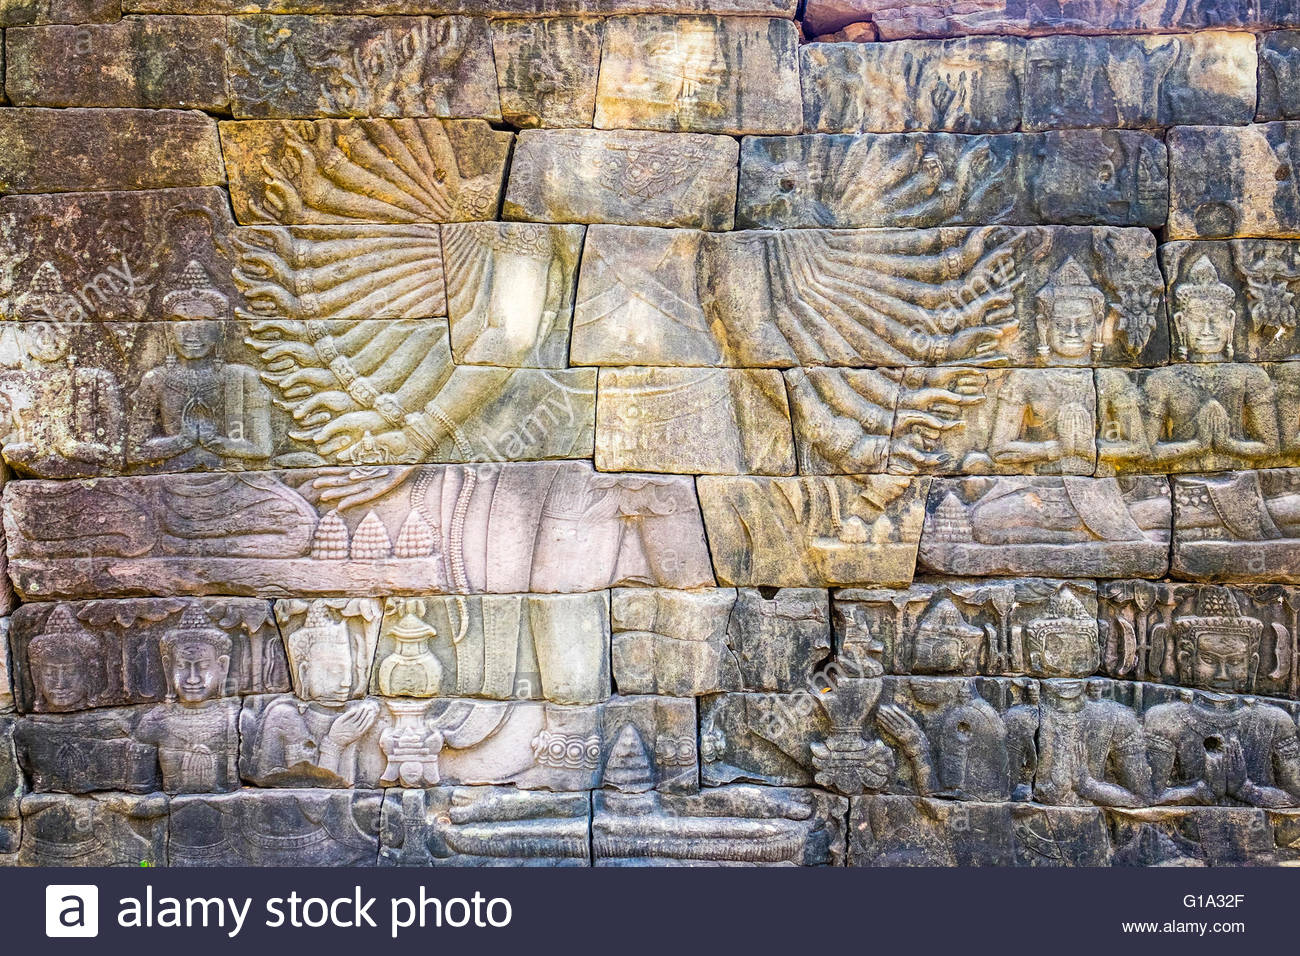 Bas-relief stone carving depicting Lokeshvara with 32 arms on the southwestern enclosure wall at Banteay Chhmar, - Stock Image